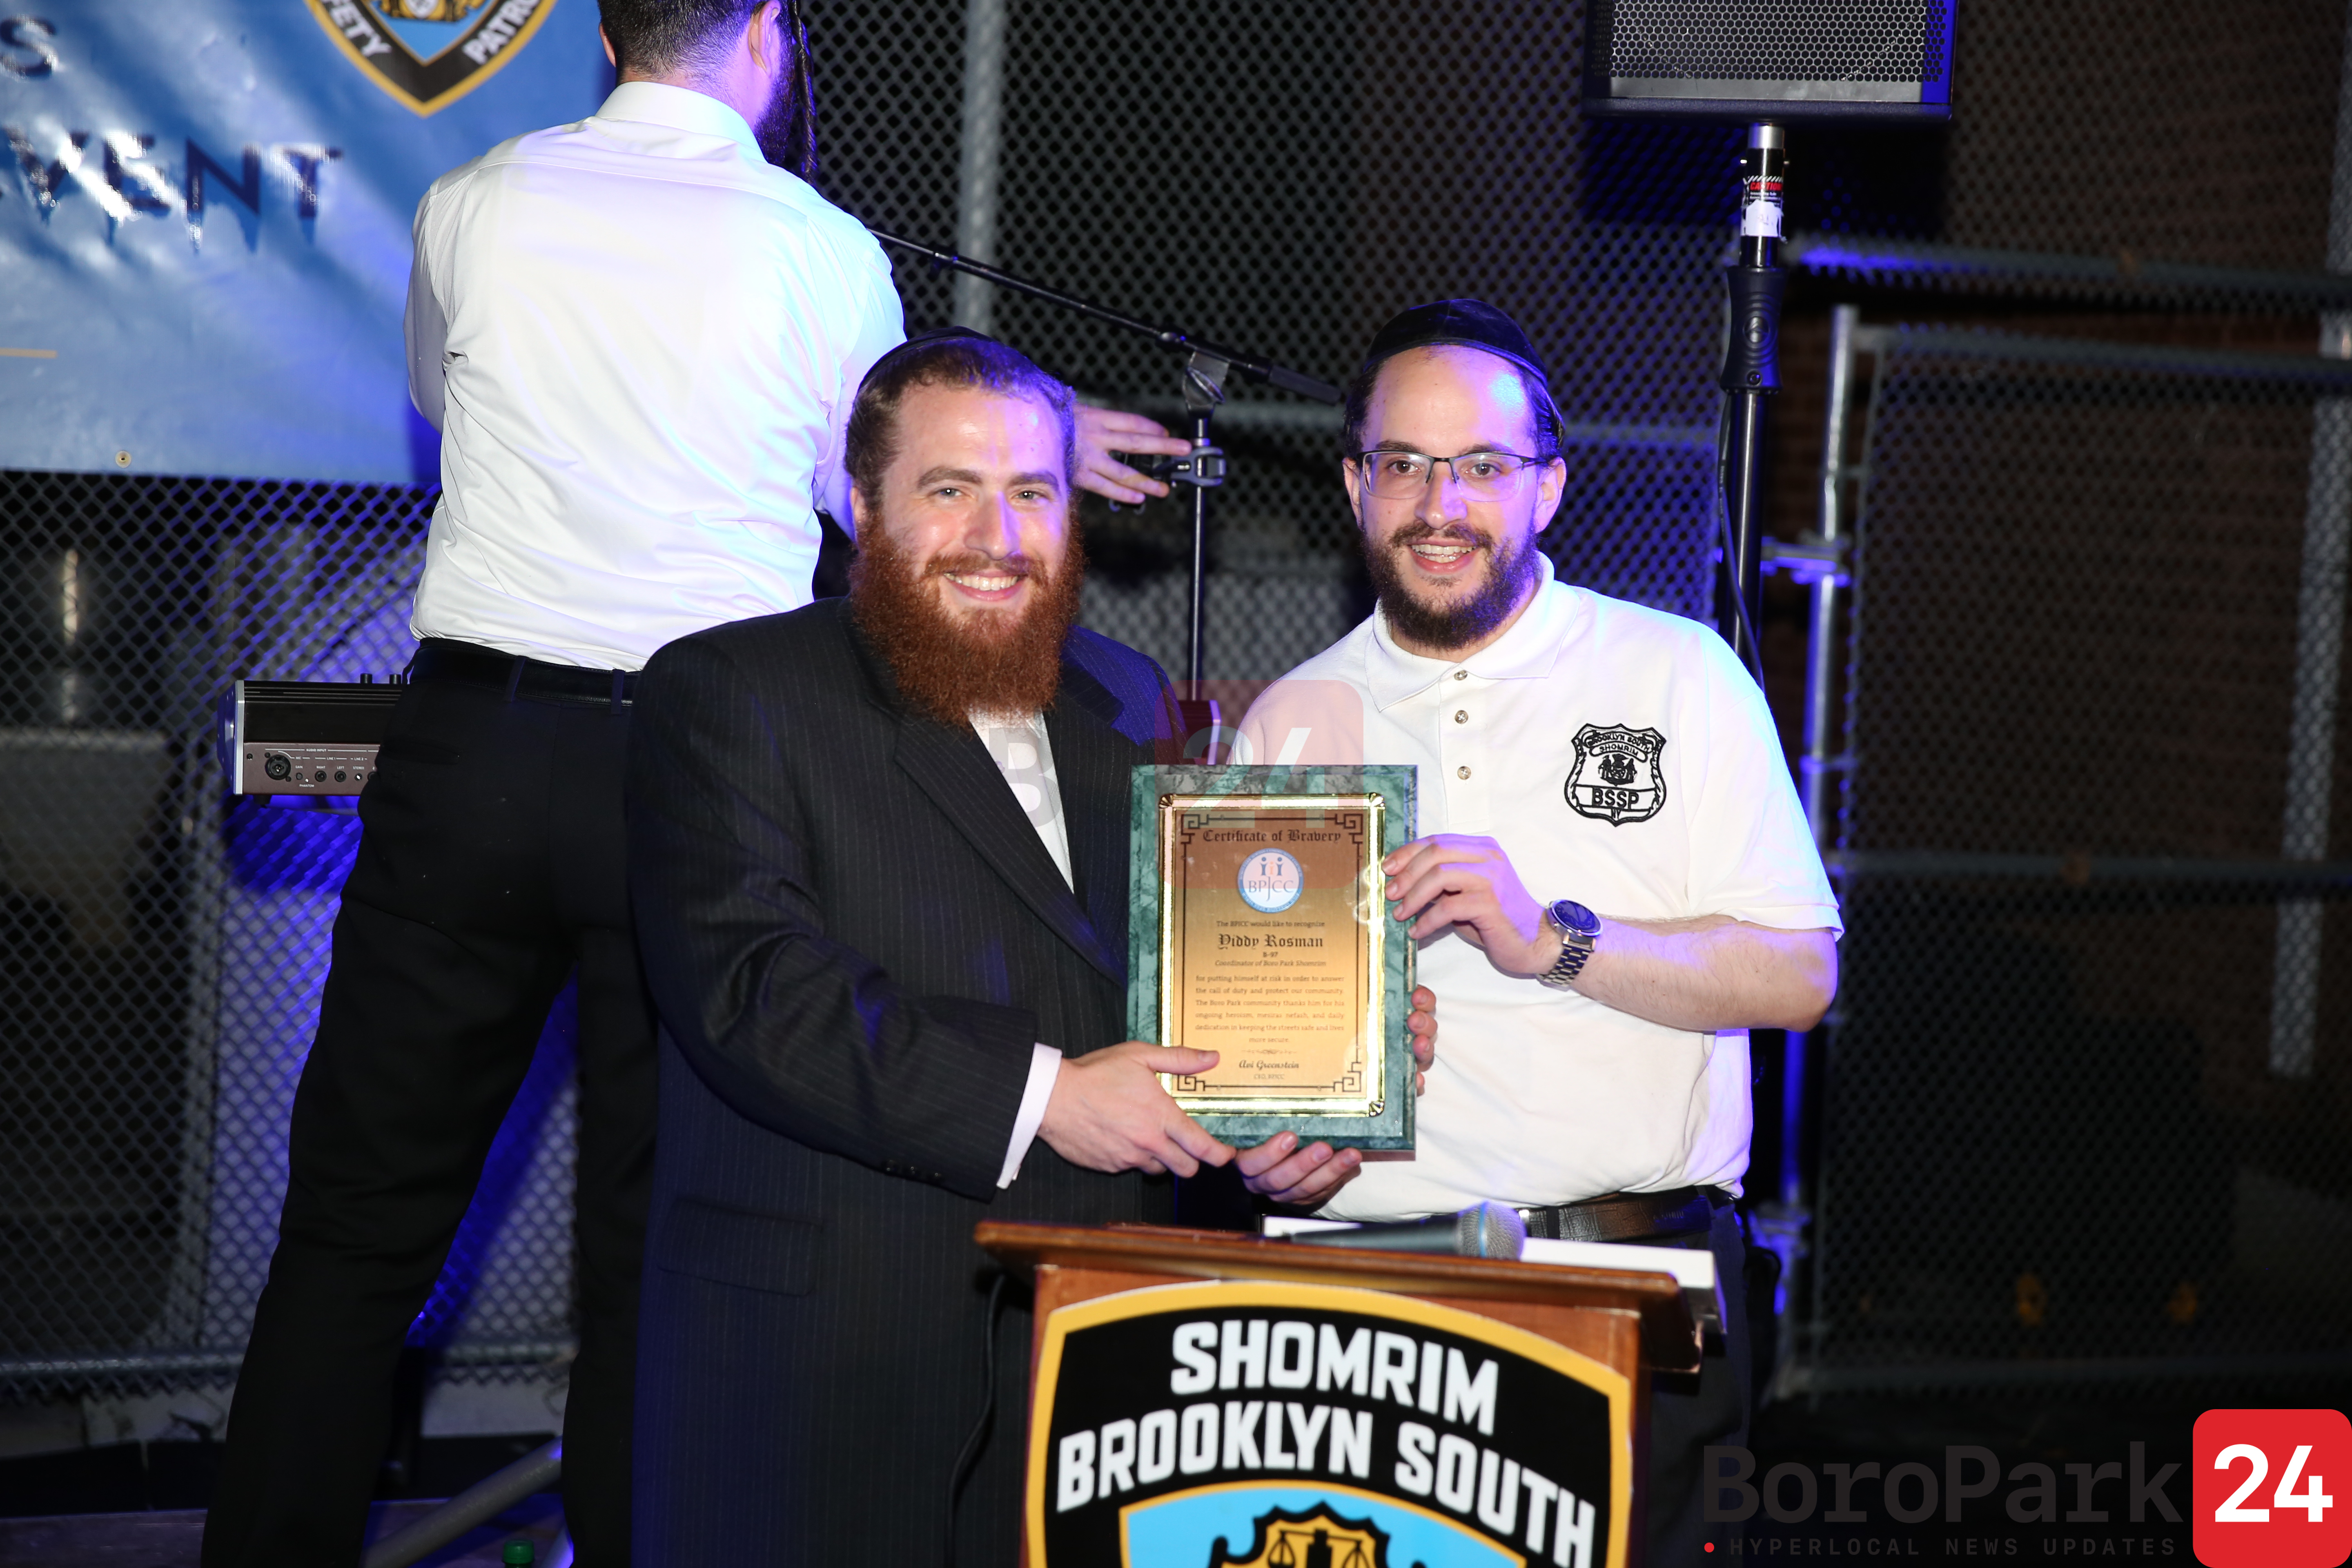 Shomrim Volunteer Stabbed Honored for his dedication by the BPJCC at the Annual Members Appreciation BBQ